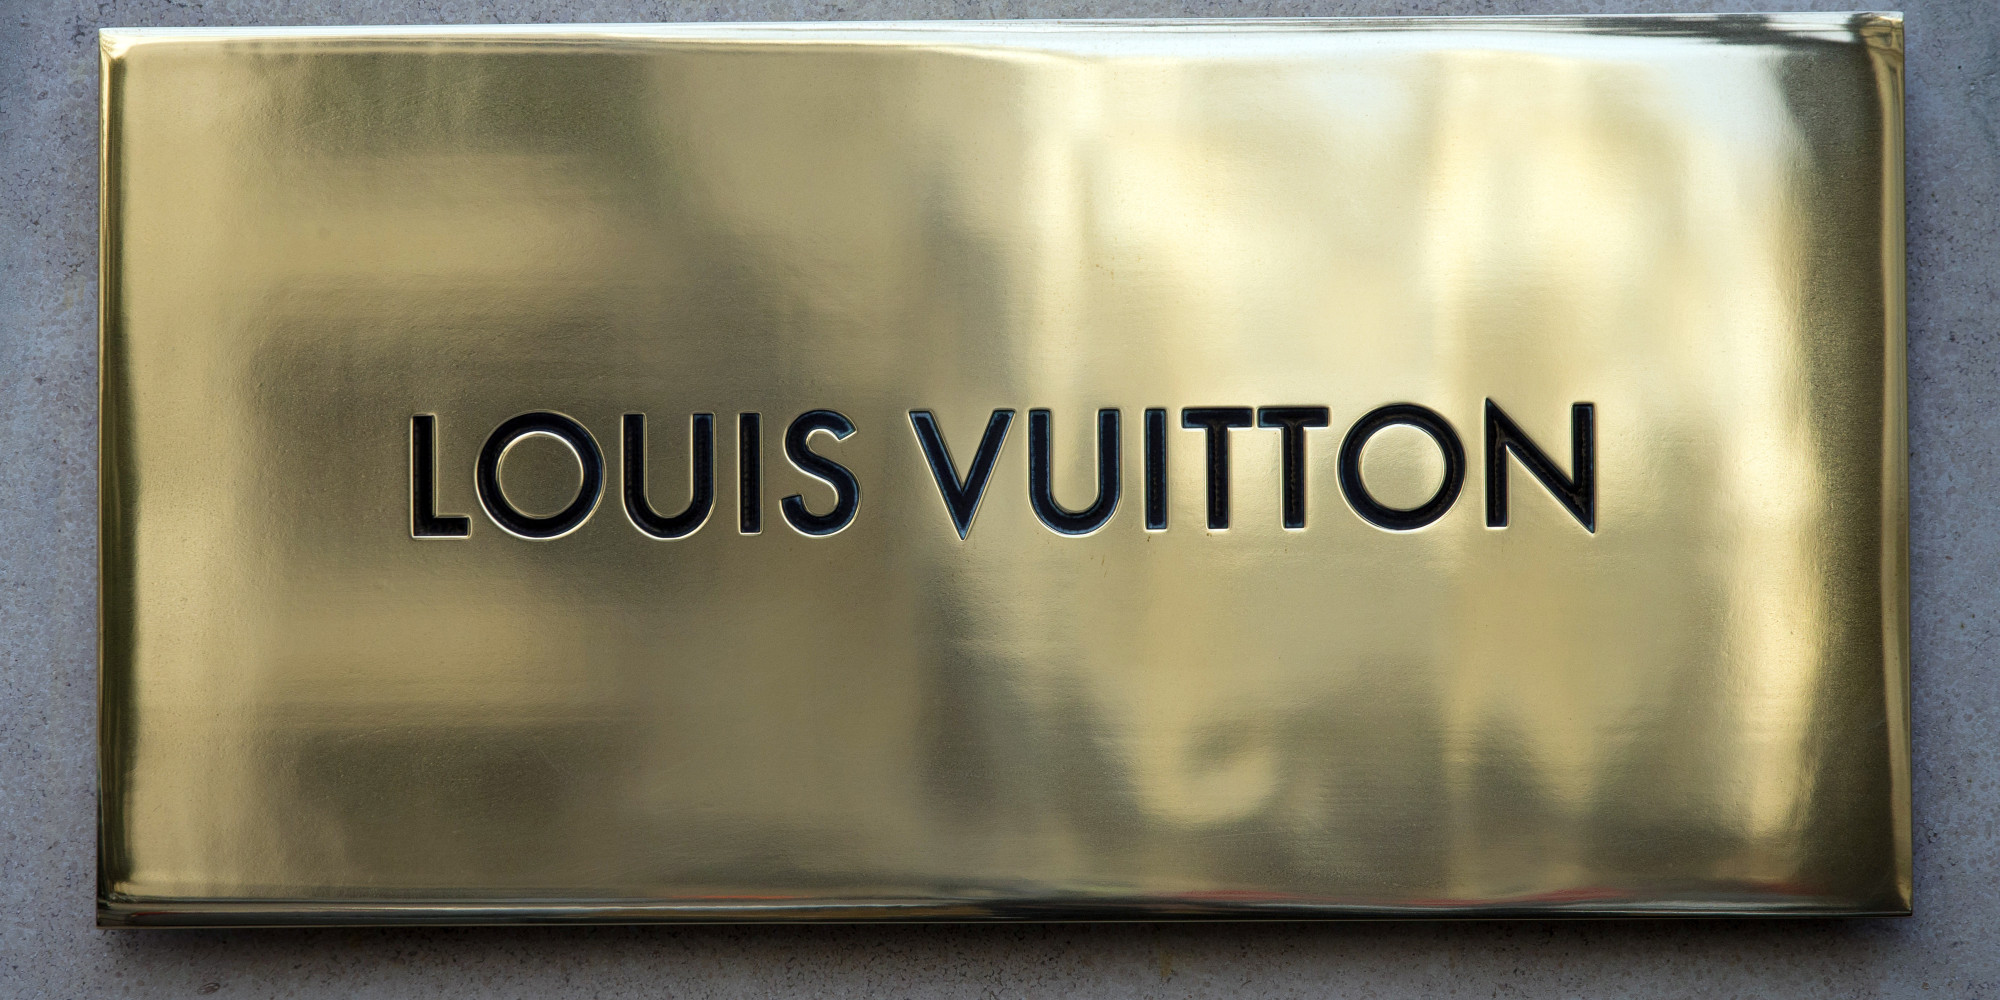 Louis Vuitton Accused Of Racism Slapped With Racial